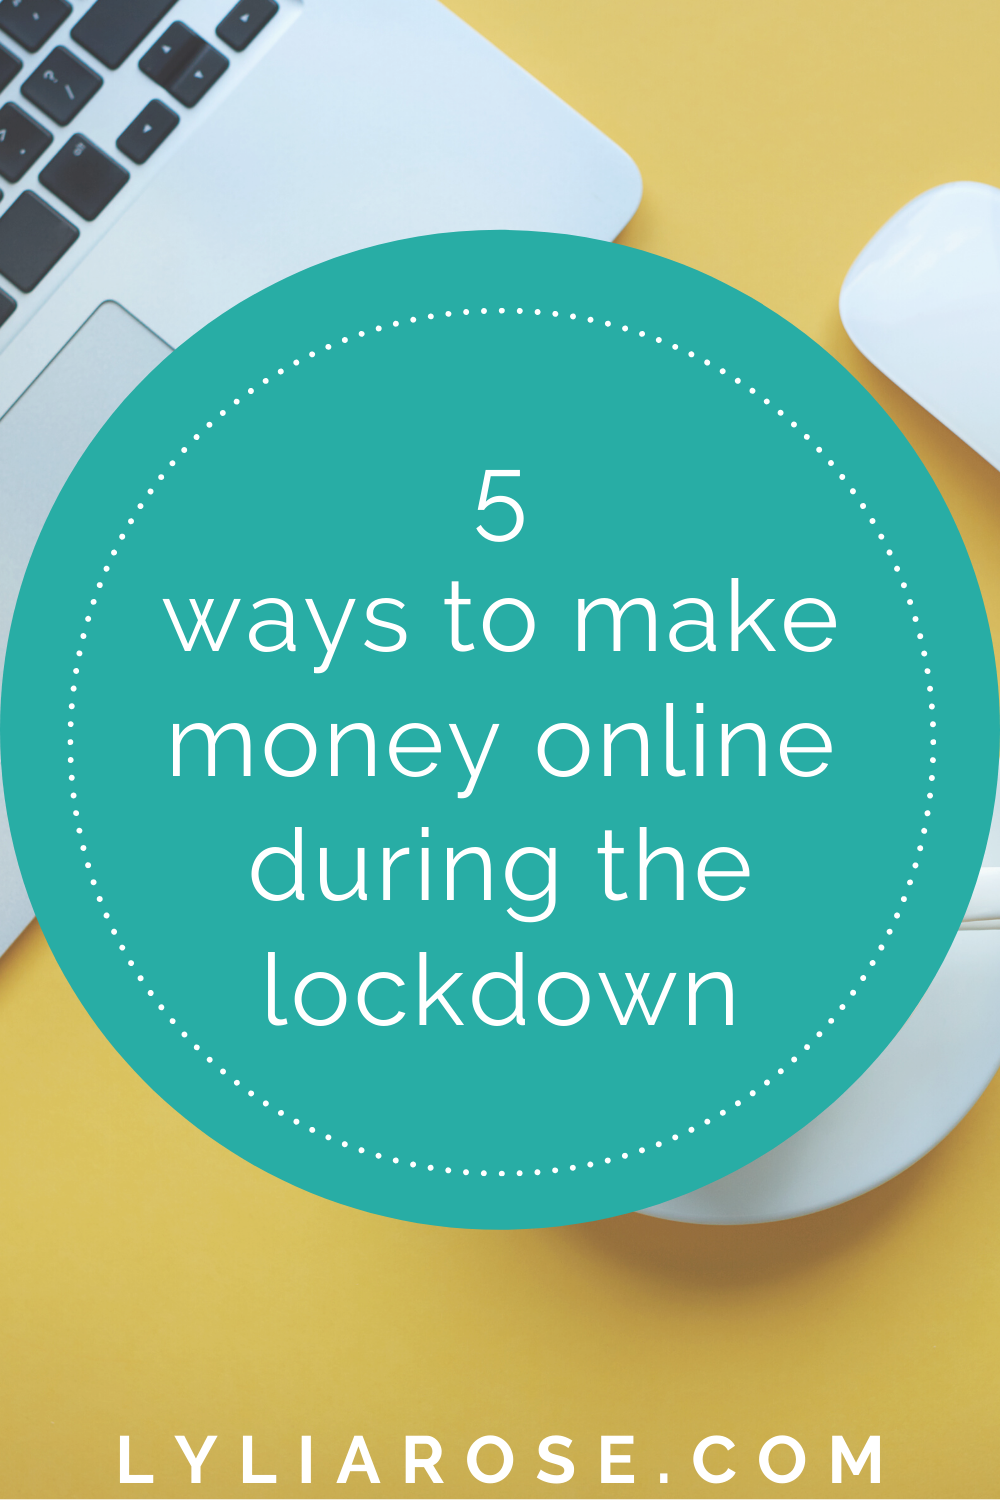 5 ways to make money online during the lockdown